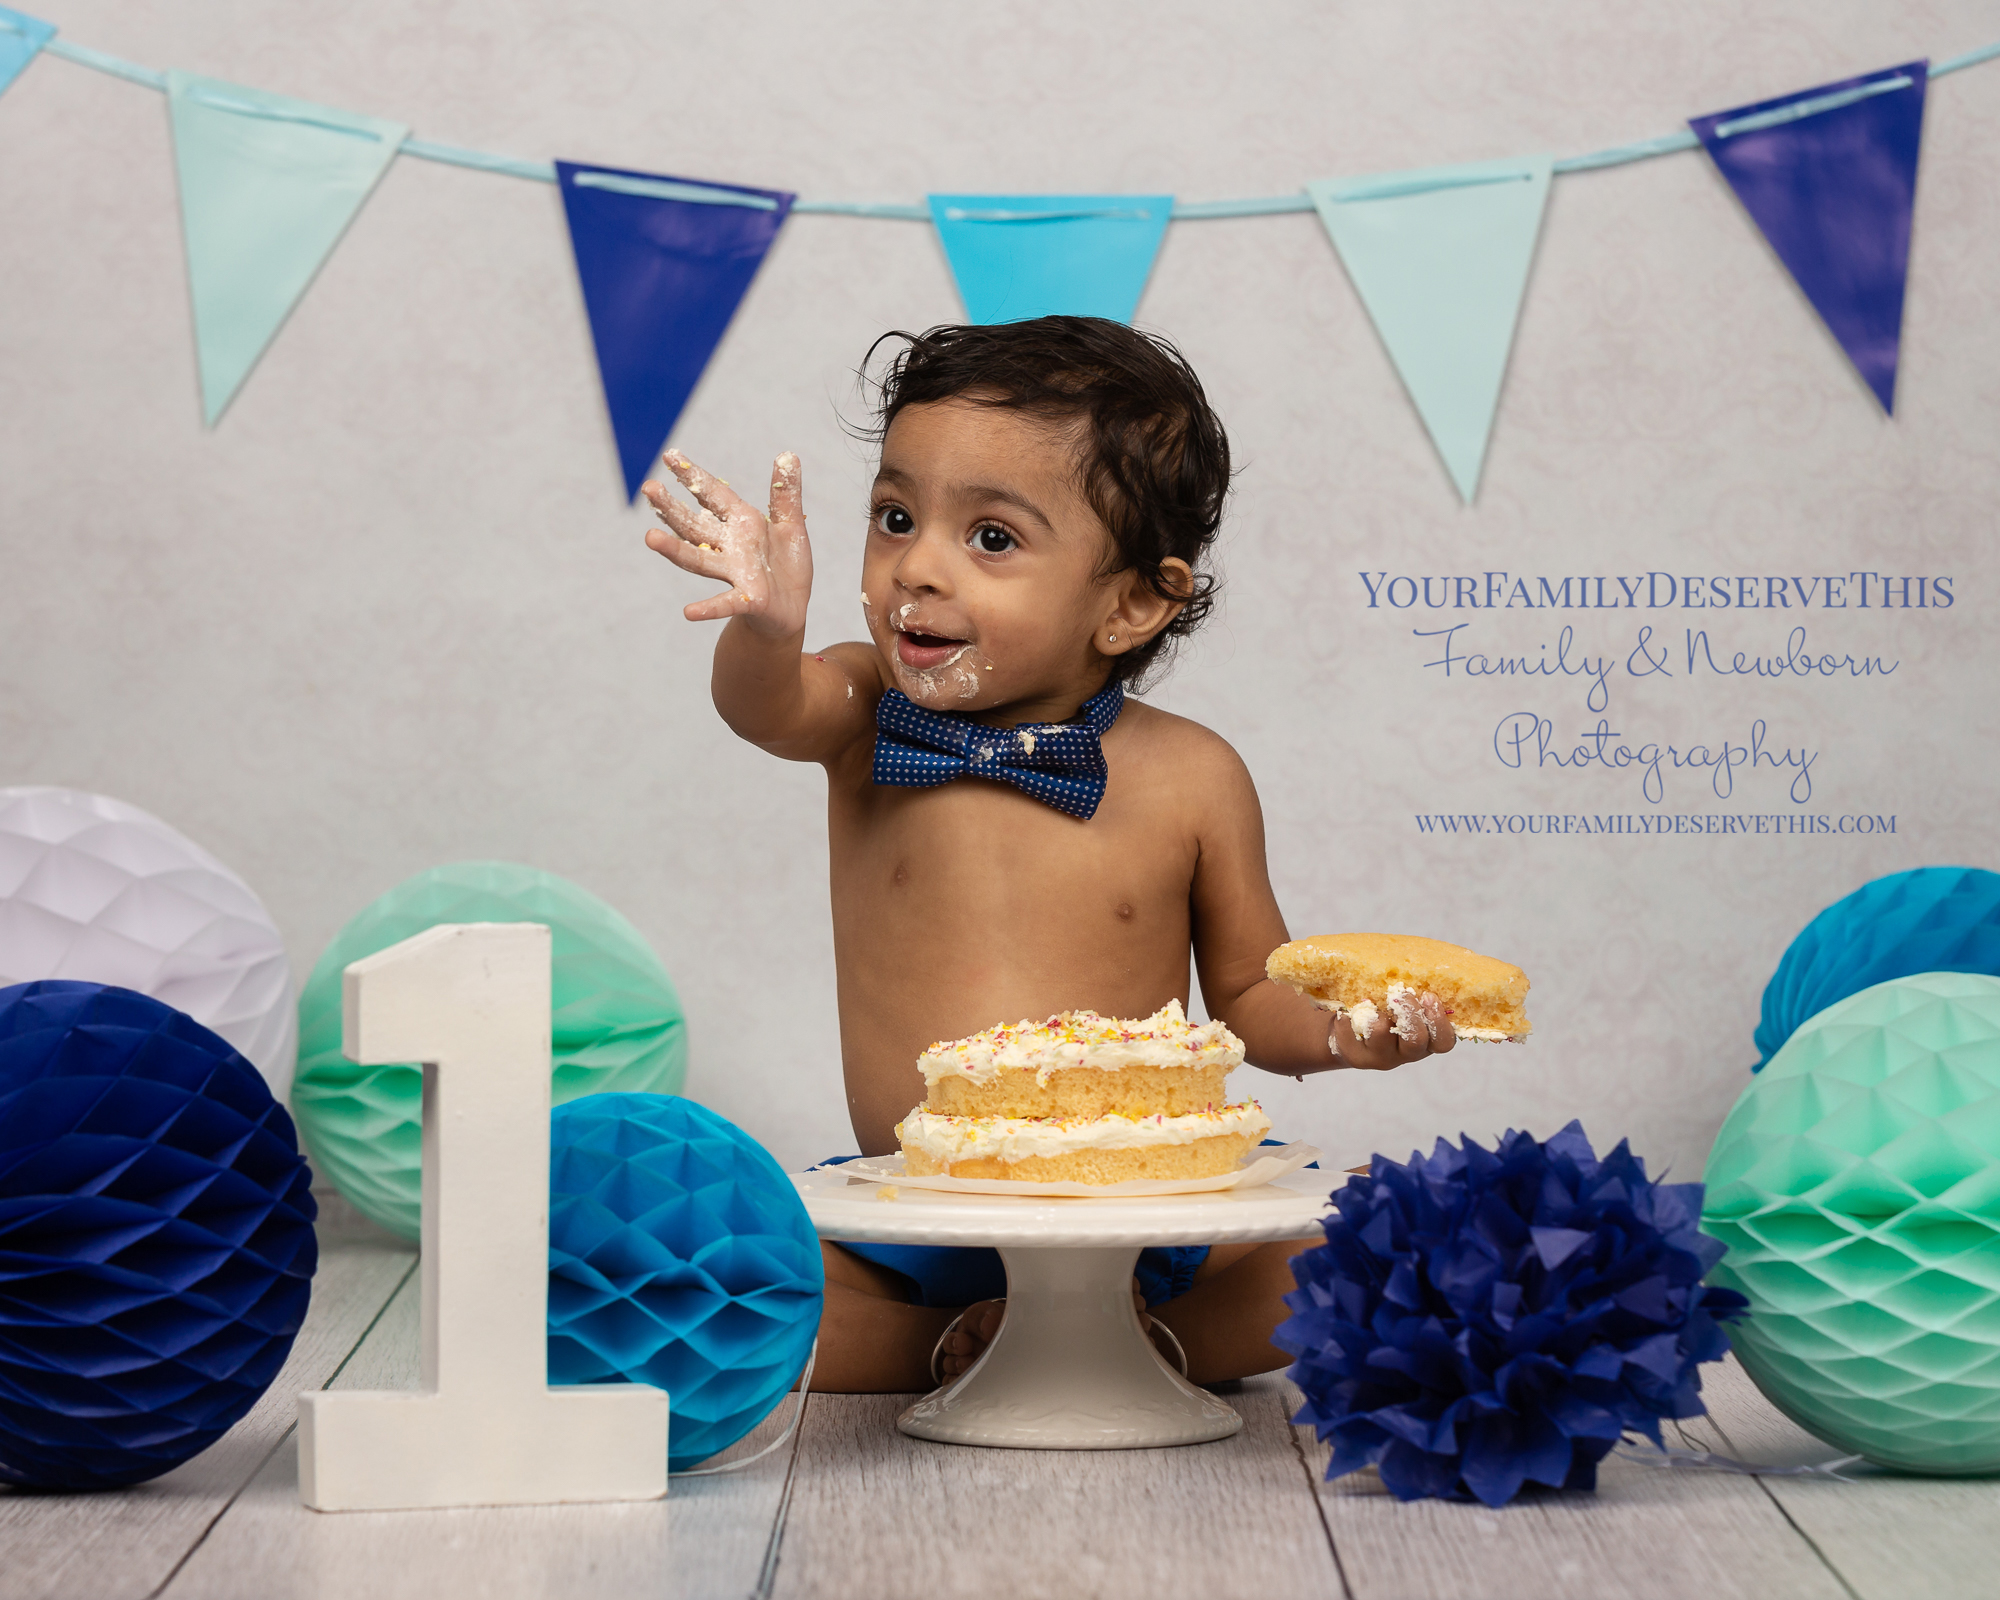 We had such a SMASHING time. Include a cake smash with your 1st Birthday Photoshoot and let the fun begin… yourfamilydeservethis.com